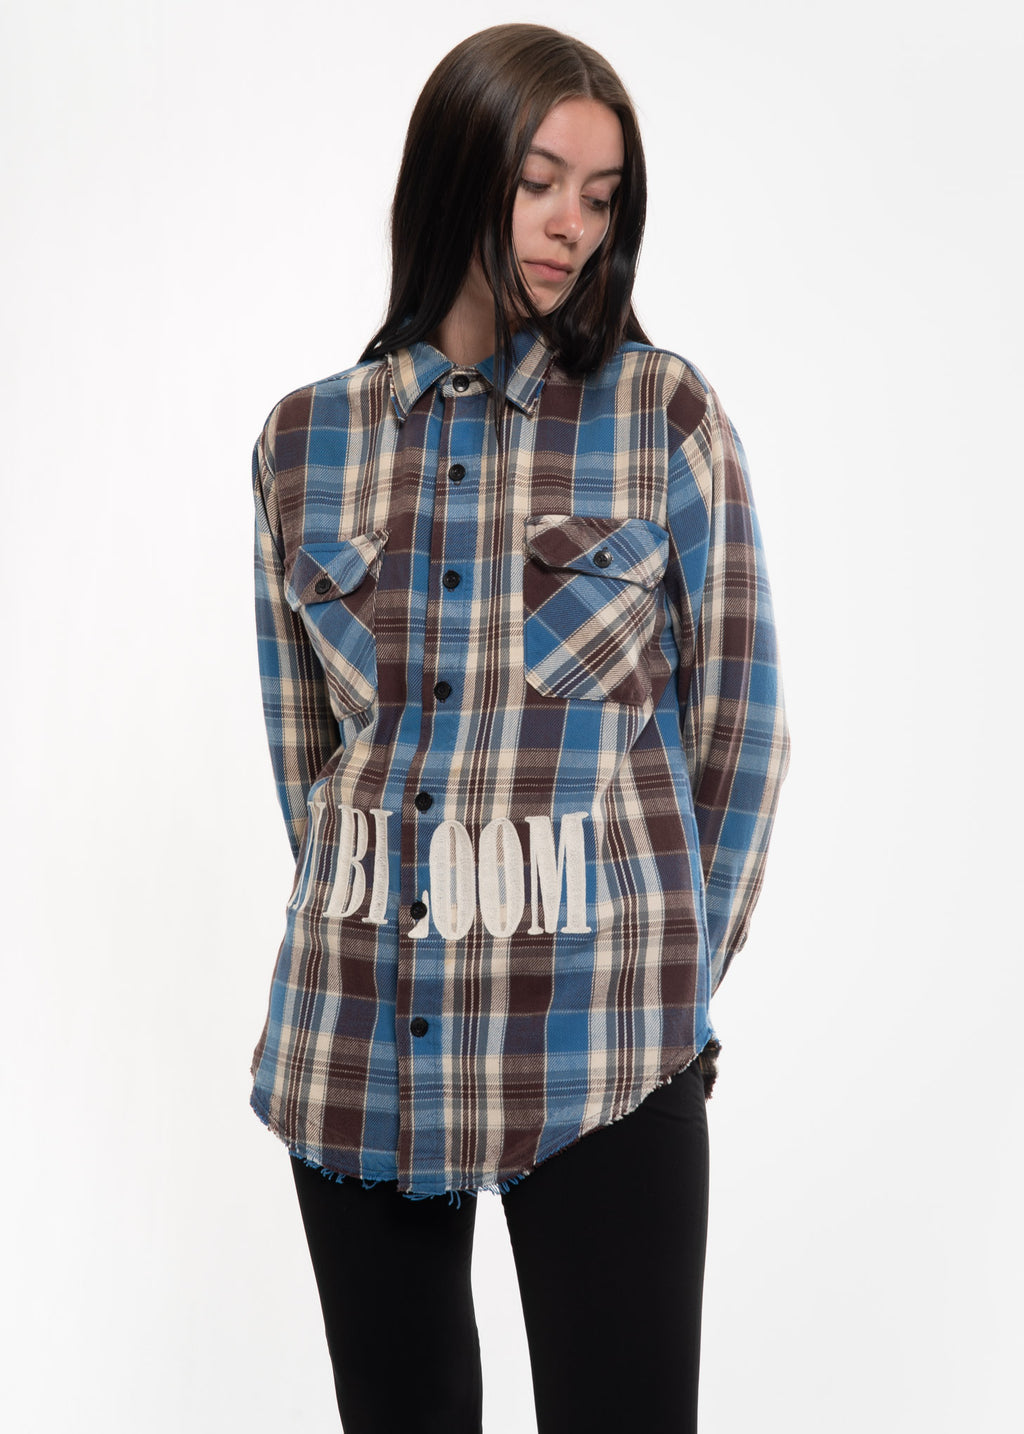 Garcons Infideles, Blue Check Vintage Flannel w/ Embroidery 1, 017 Shop